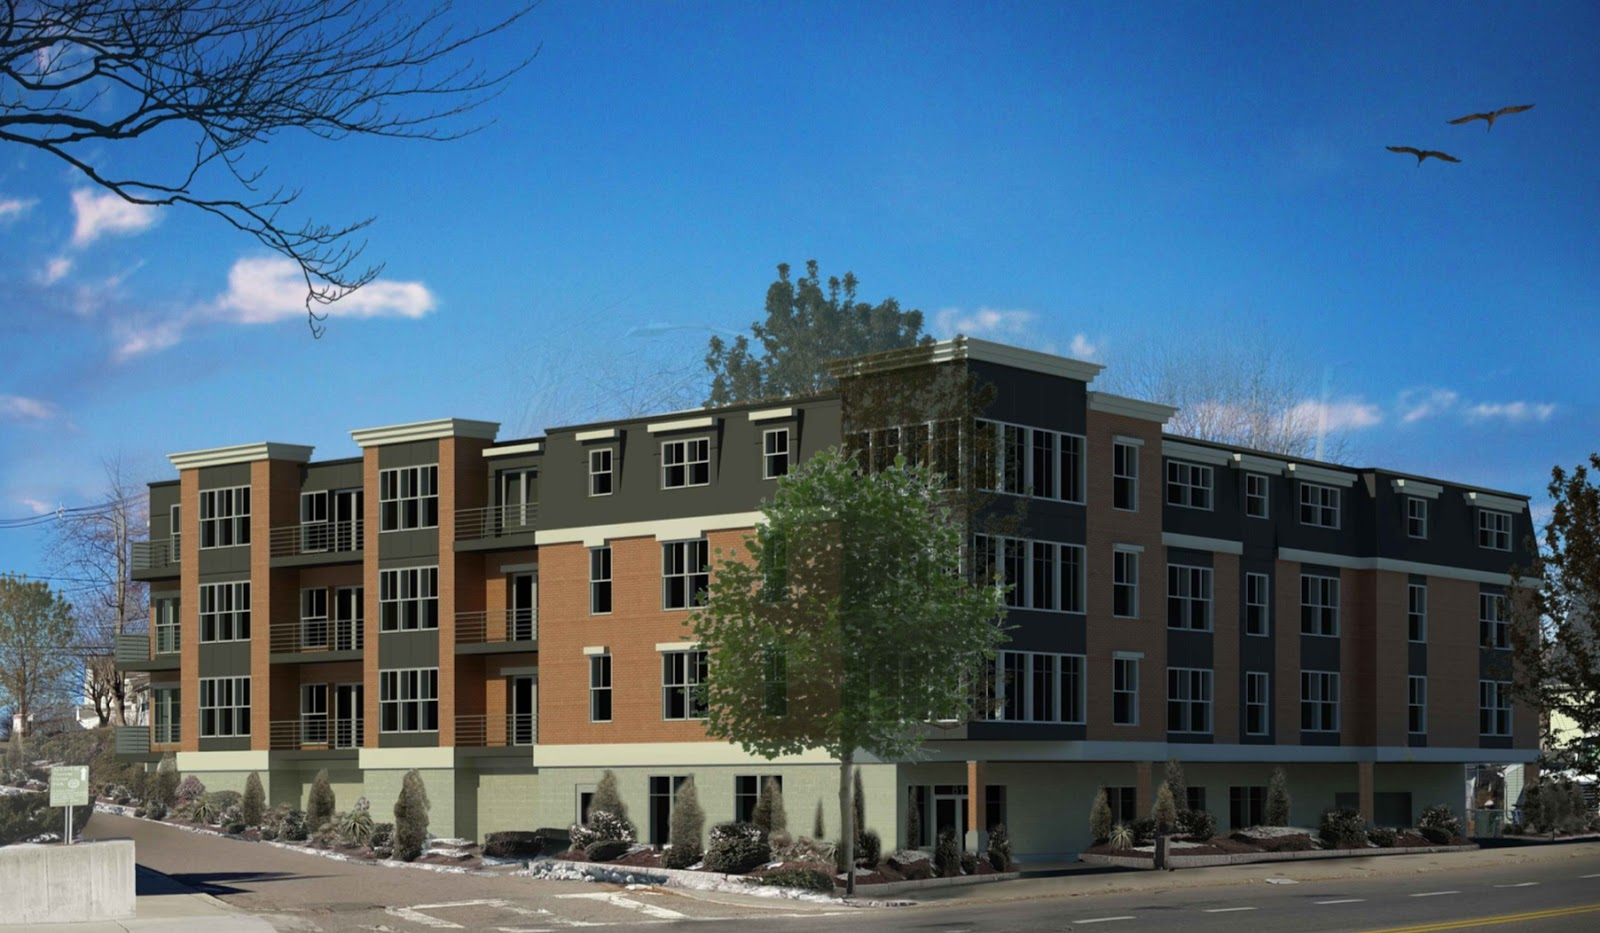 81 chestnut hill avenue real estate development residential apartments allston brighton boston new construction